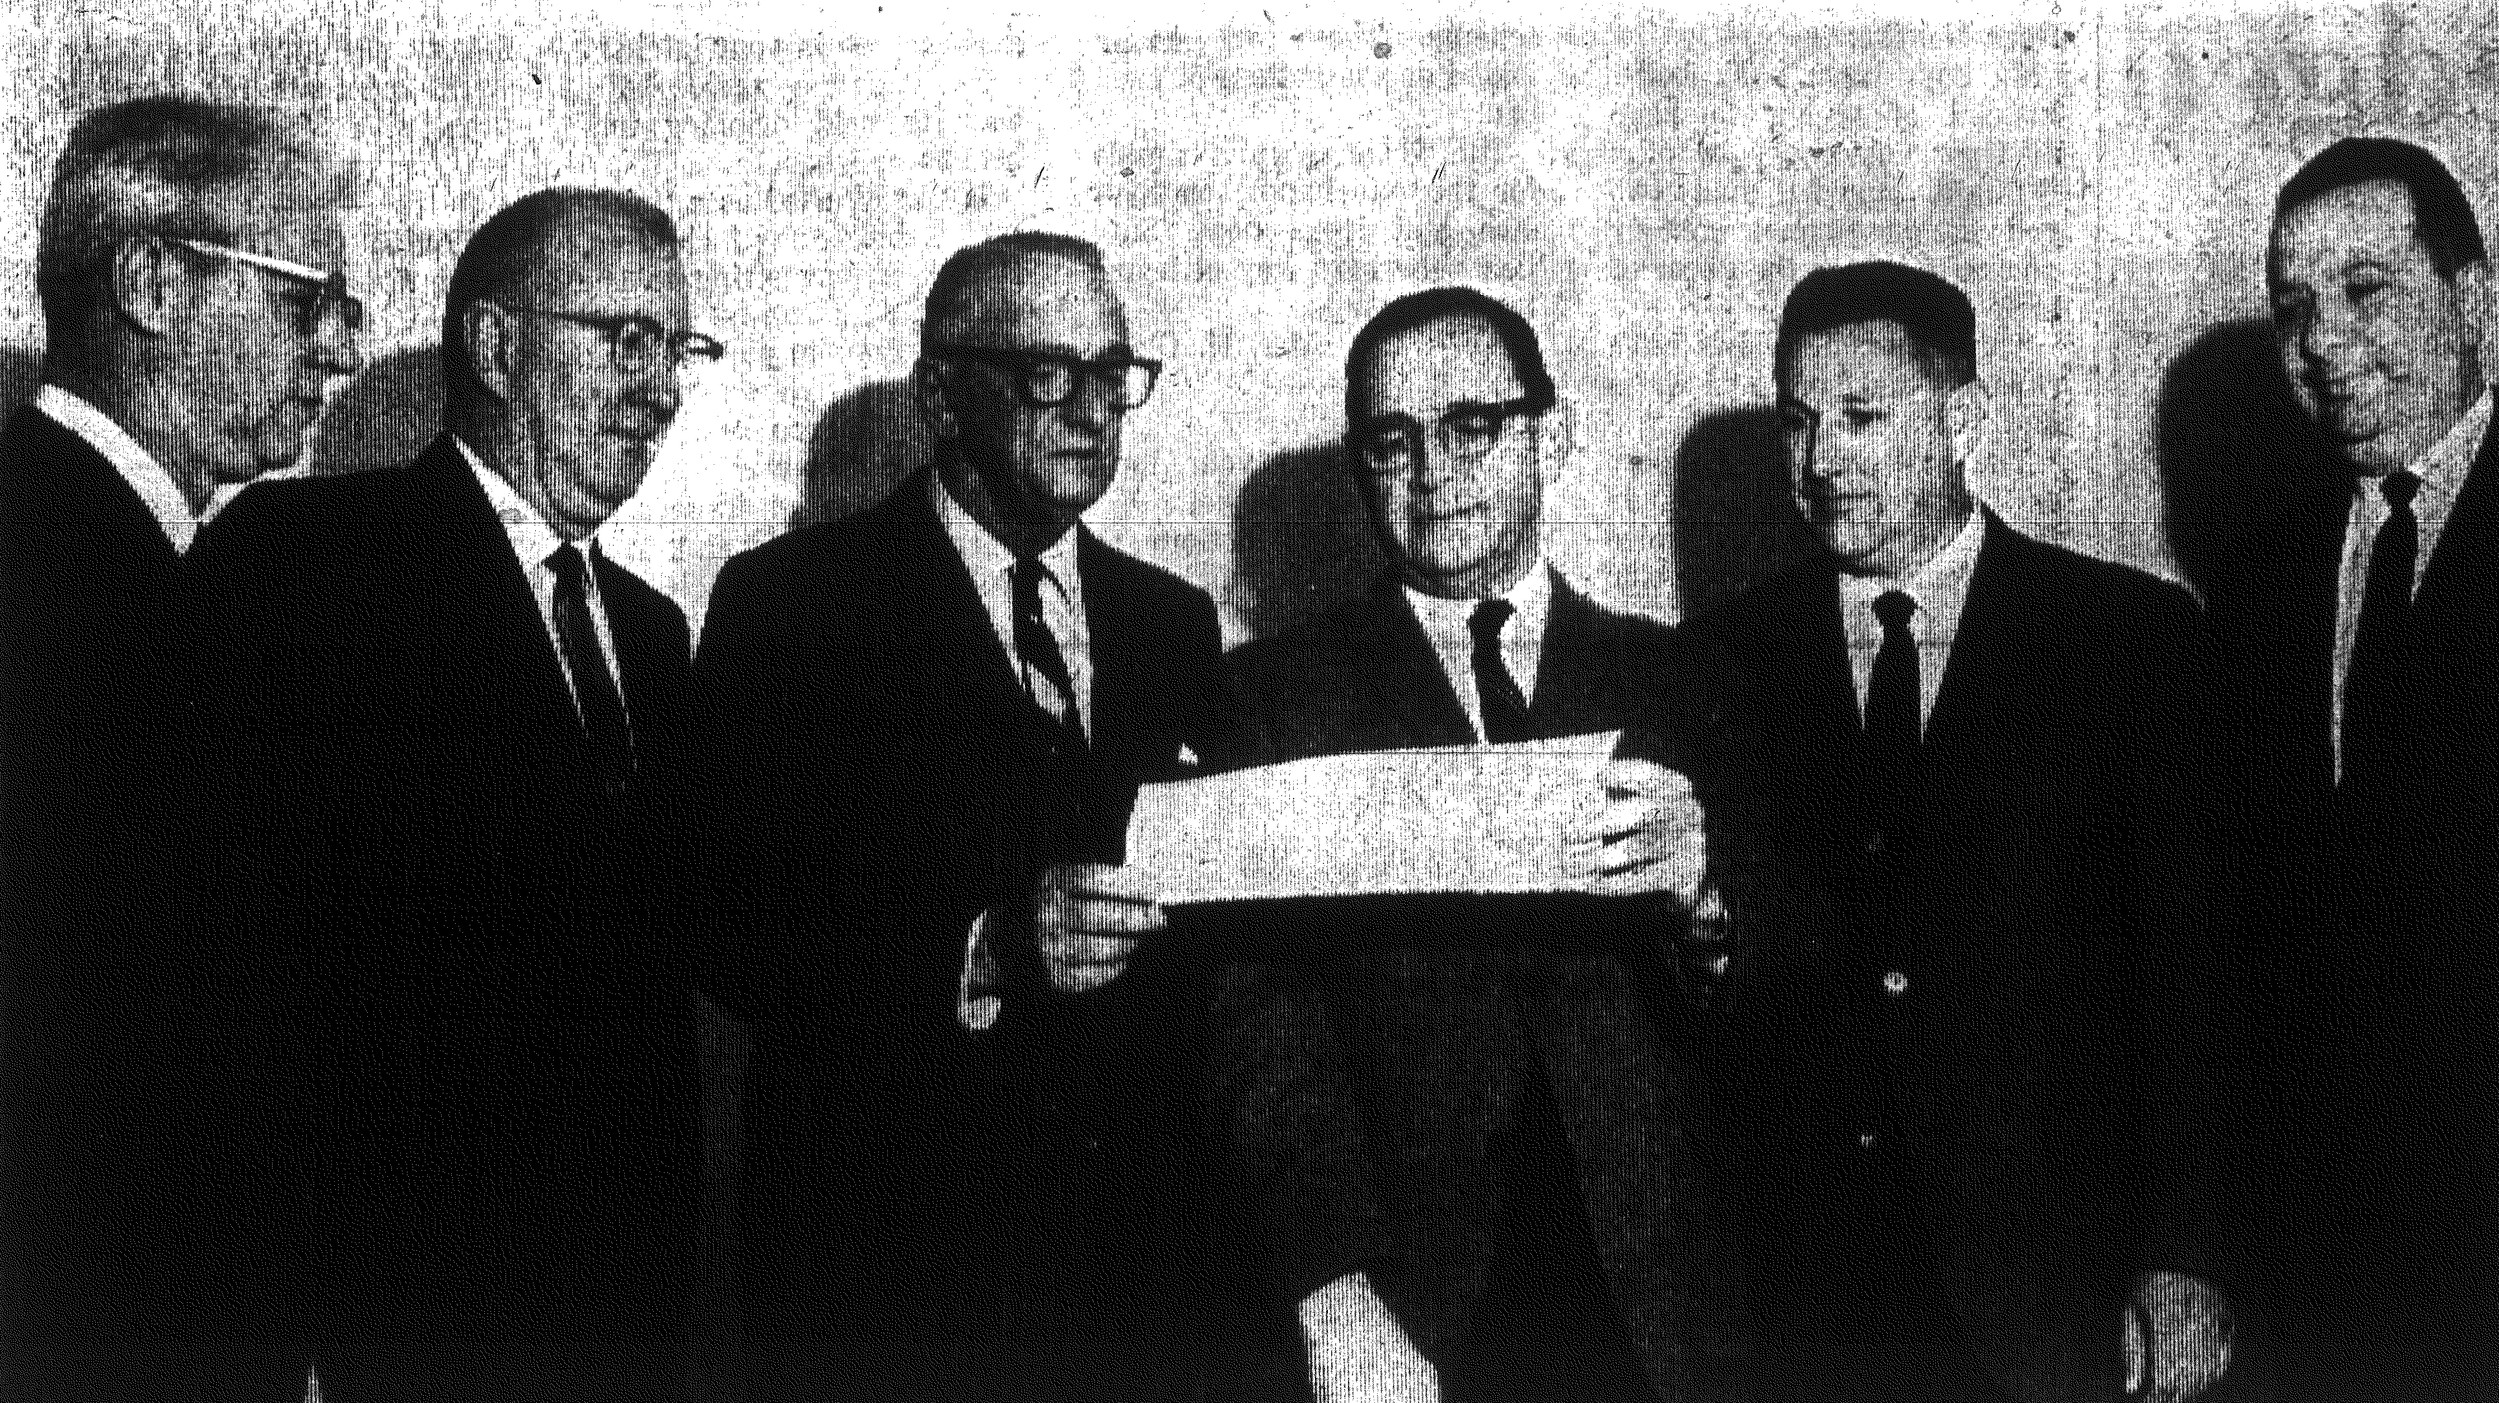 1967 - Division chairmen of the Wilson Hall campaign to raise $500,000 for a permanent campus for the private school look over plans. From left, they are Clint Brogdon, D.B. James, S.A. Harvin, J.E. Eldridge, Edward Gibson and Ramon Schwartz.